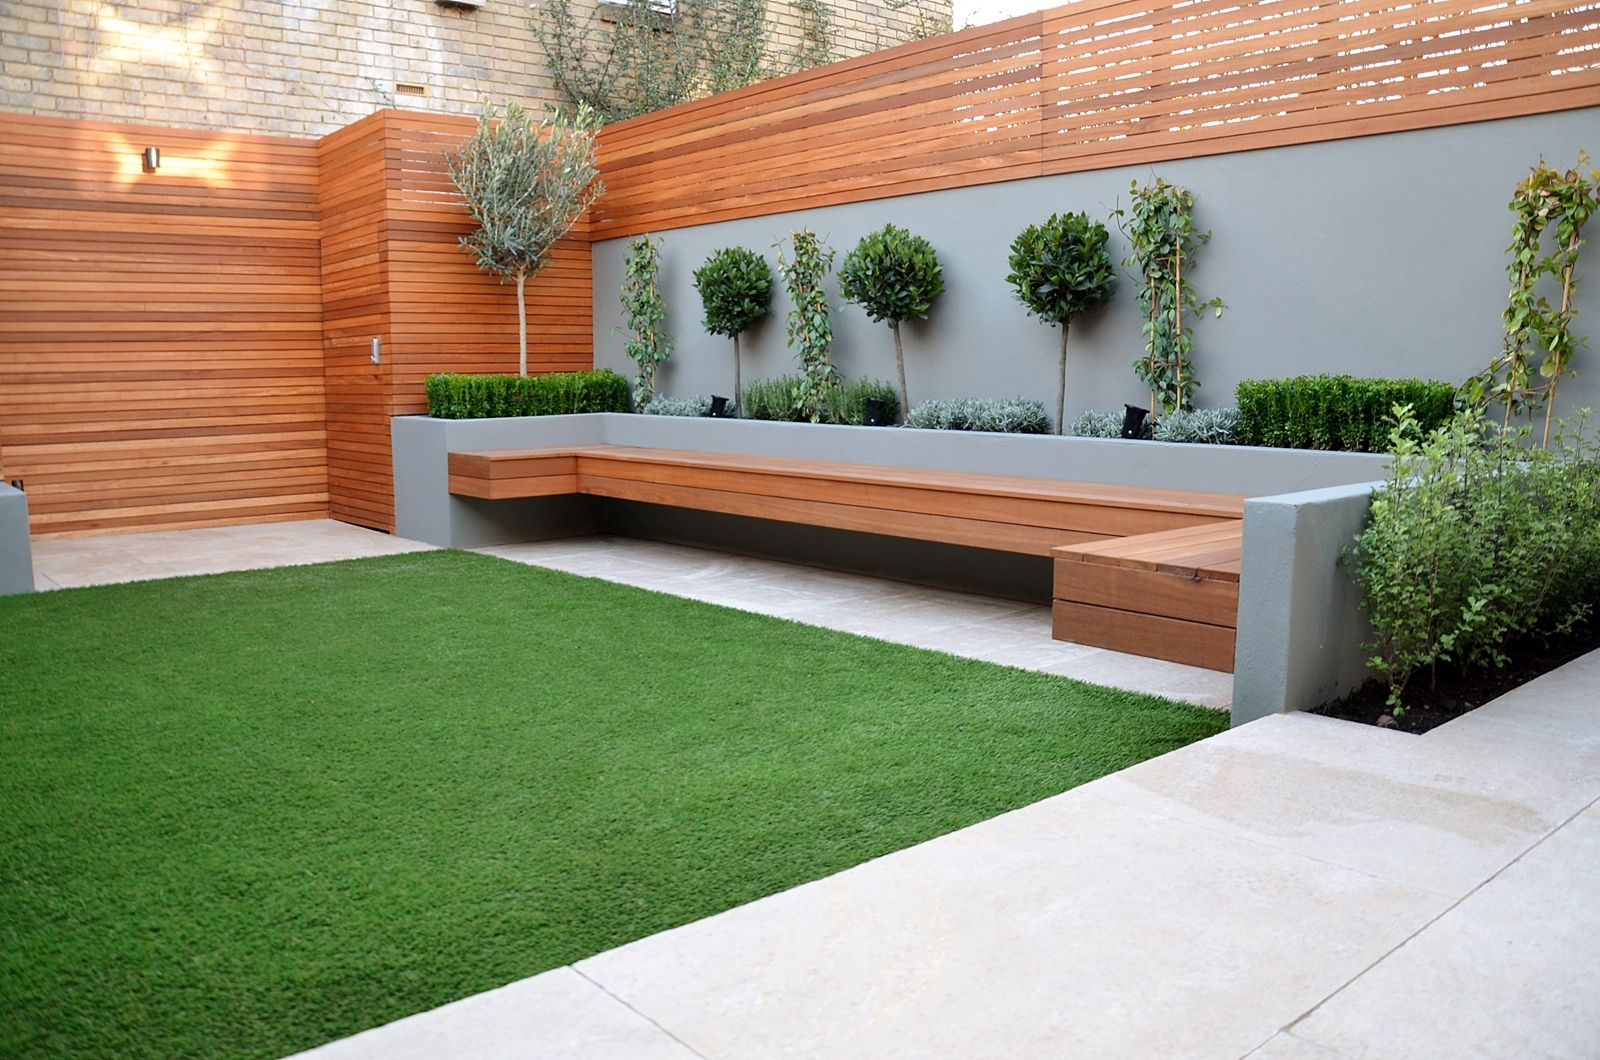 Modern low maintenance garden design clapham london for Modern garden design ideas